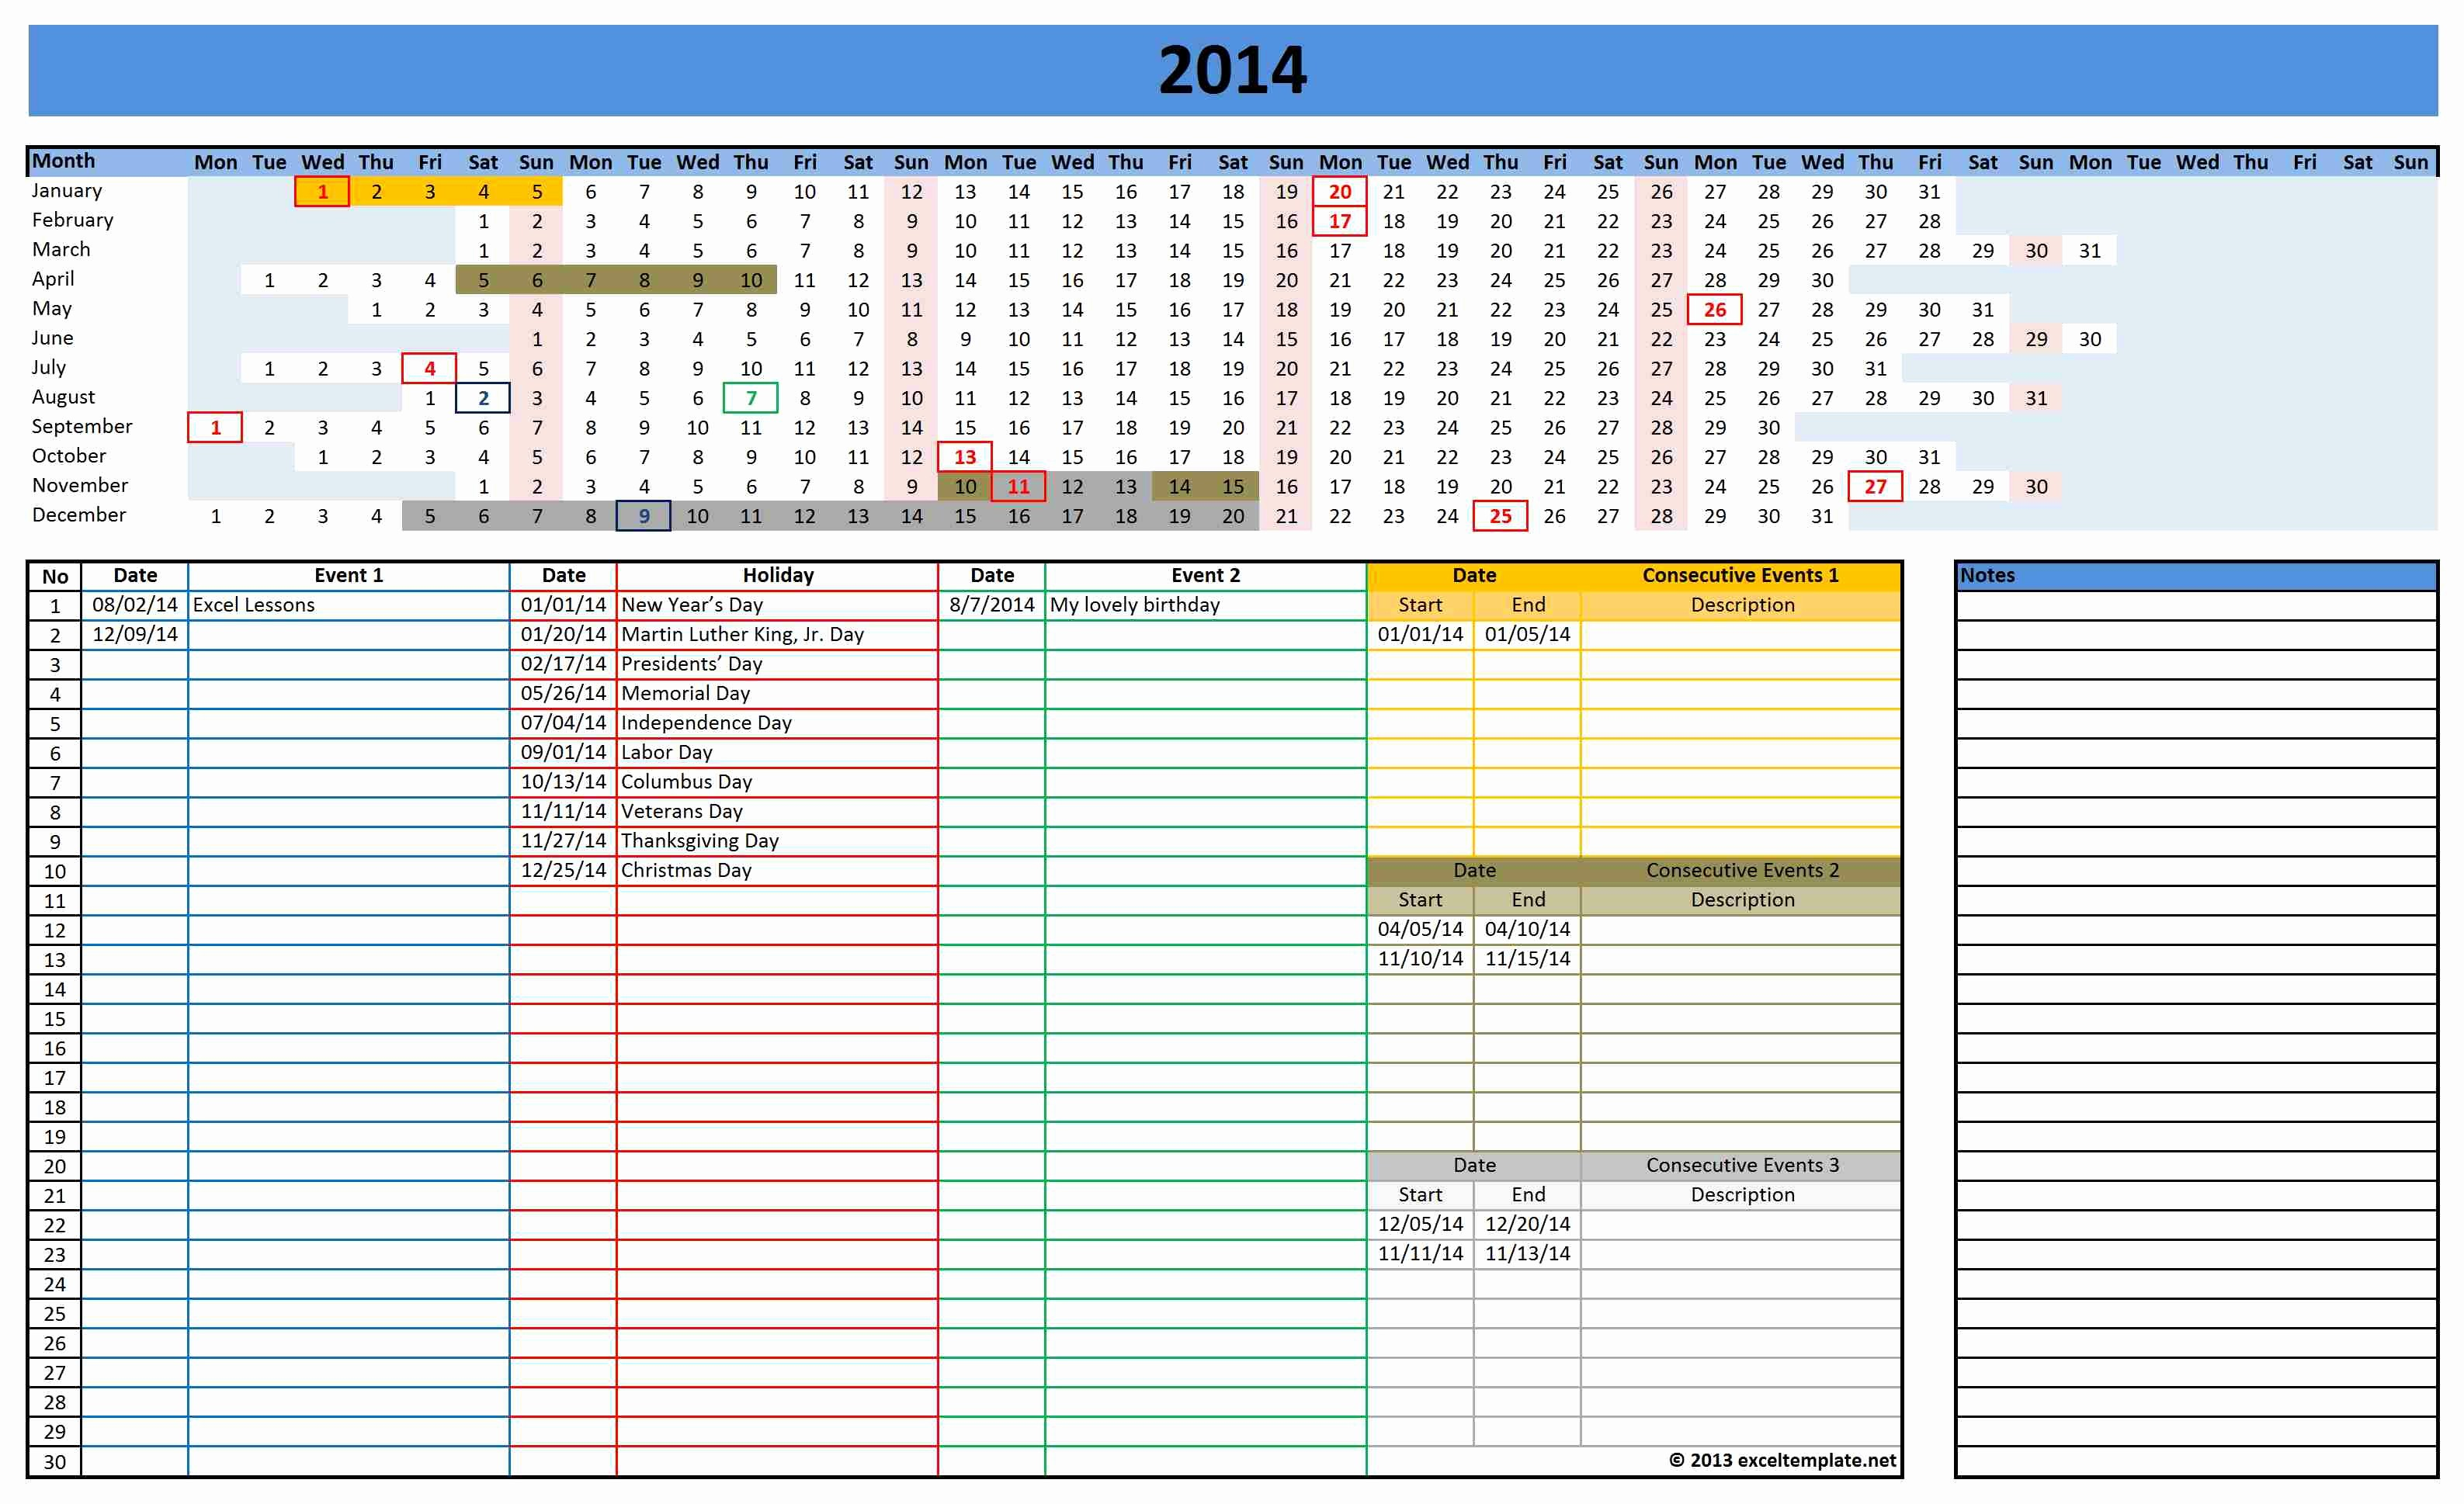 Best Budget Excel Template 2016 Luxury Excel Calendar Templates